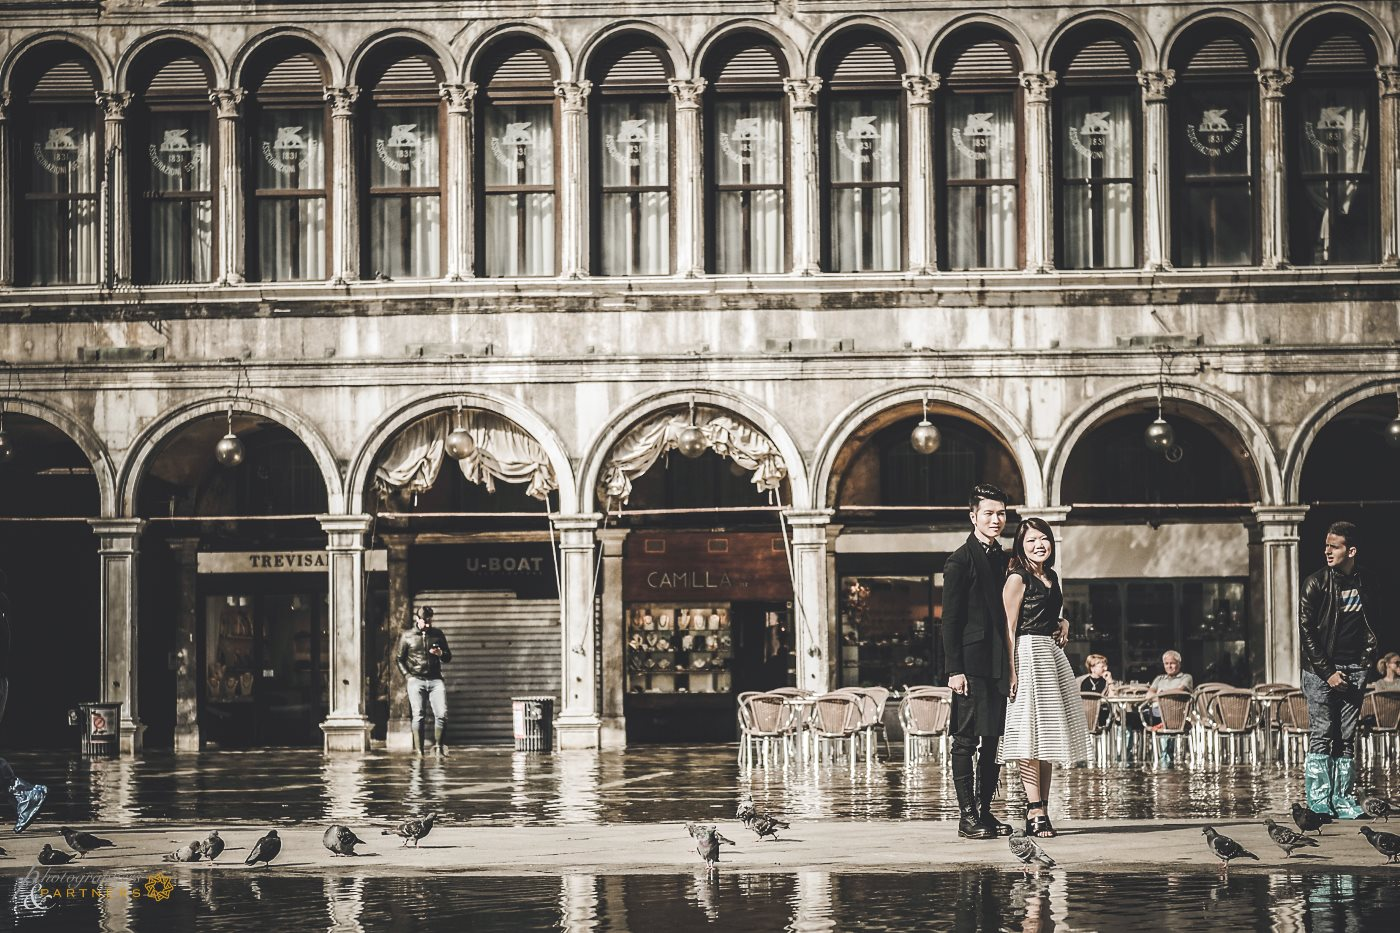 A photo in Piazza San Marco after the water overflow.